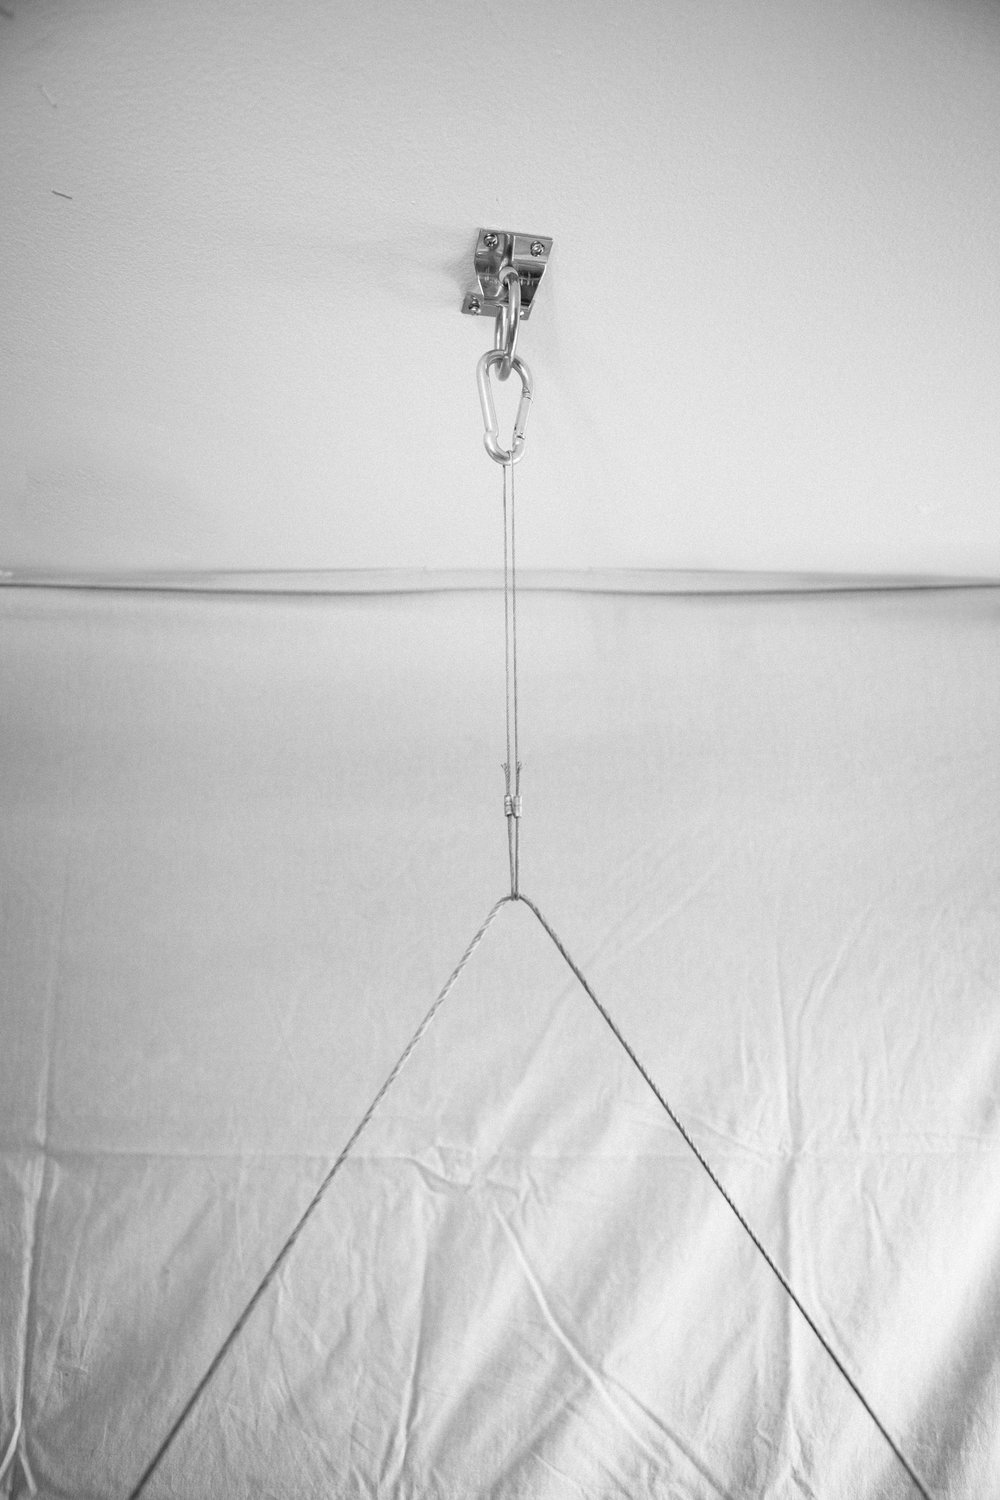 Indoor hanging system w/ carabiner, aircraft wire, and ceiling anchor